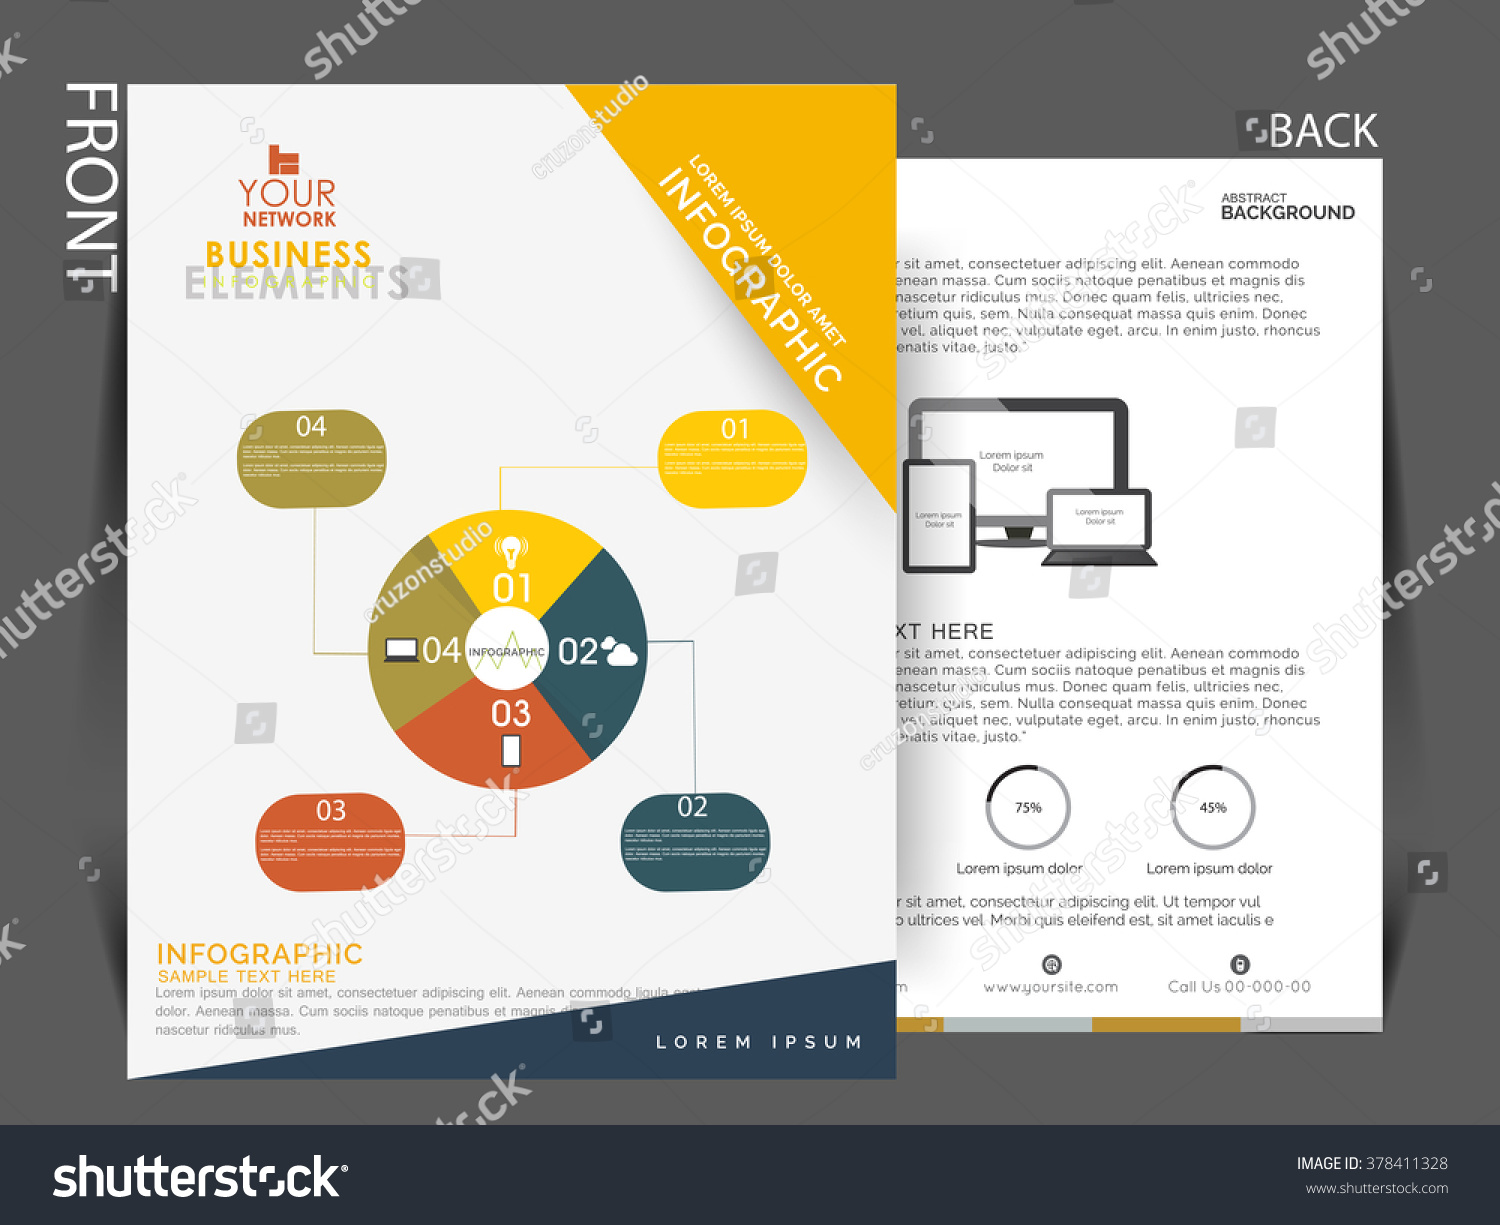 Pro tips for creating interactive infographics  Creative Bloq